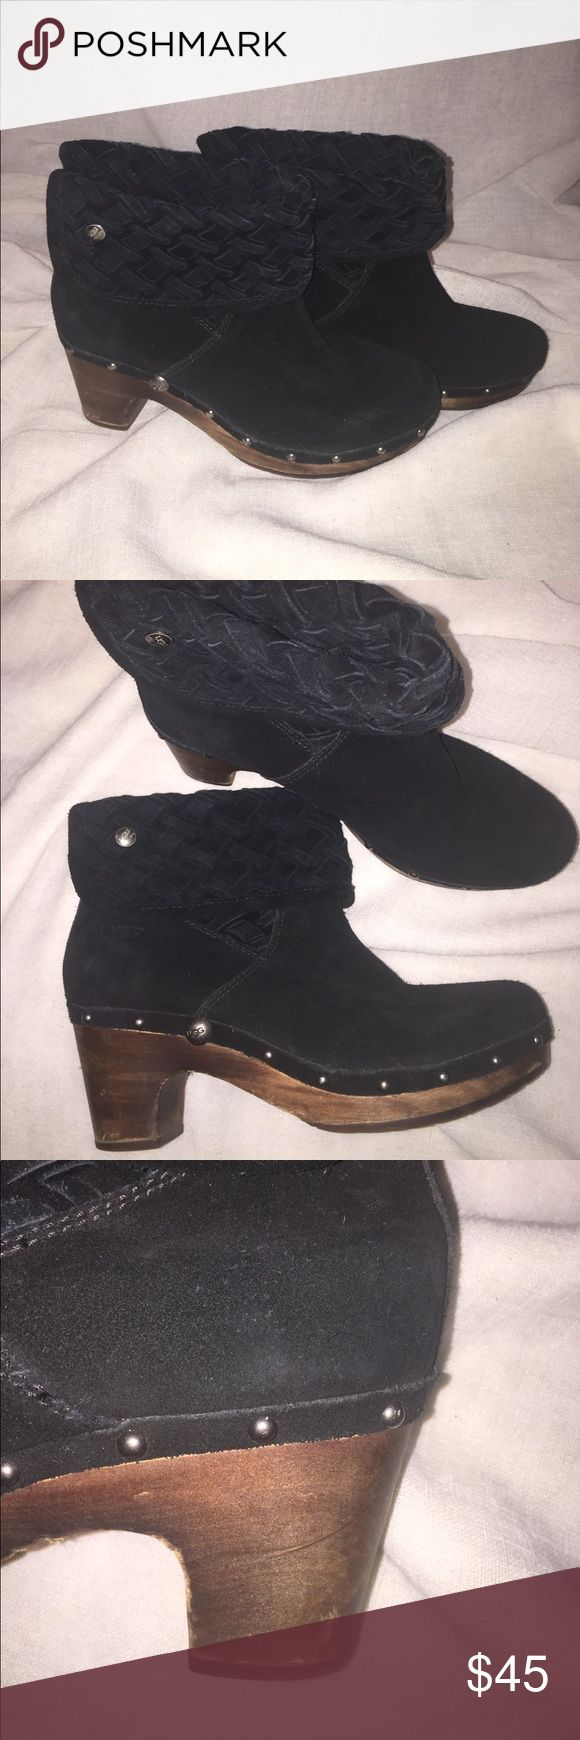 Super cute Uggs lynnea arroyo black woven size 10 Super cute the style is Lynne's arroyo and they are black the details are adorable these have a 2.5 in heal but it doesn't feel like your wearing a heal! These are a women's size 10 and run true to size normal wear UGG Shoes Ankle Boots & Booties